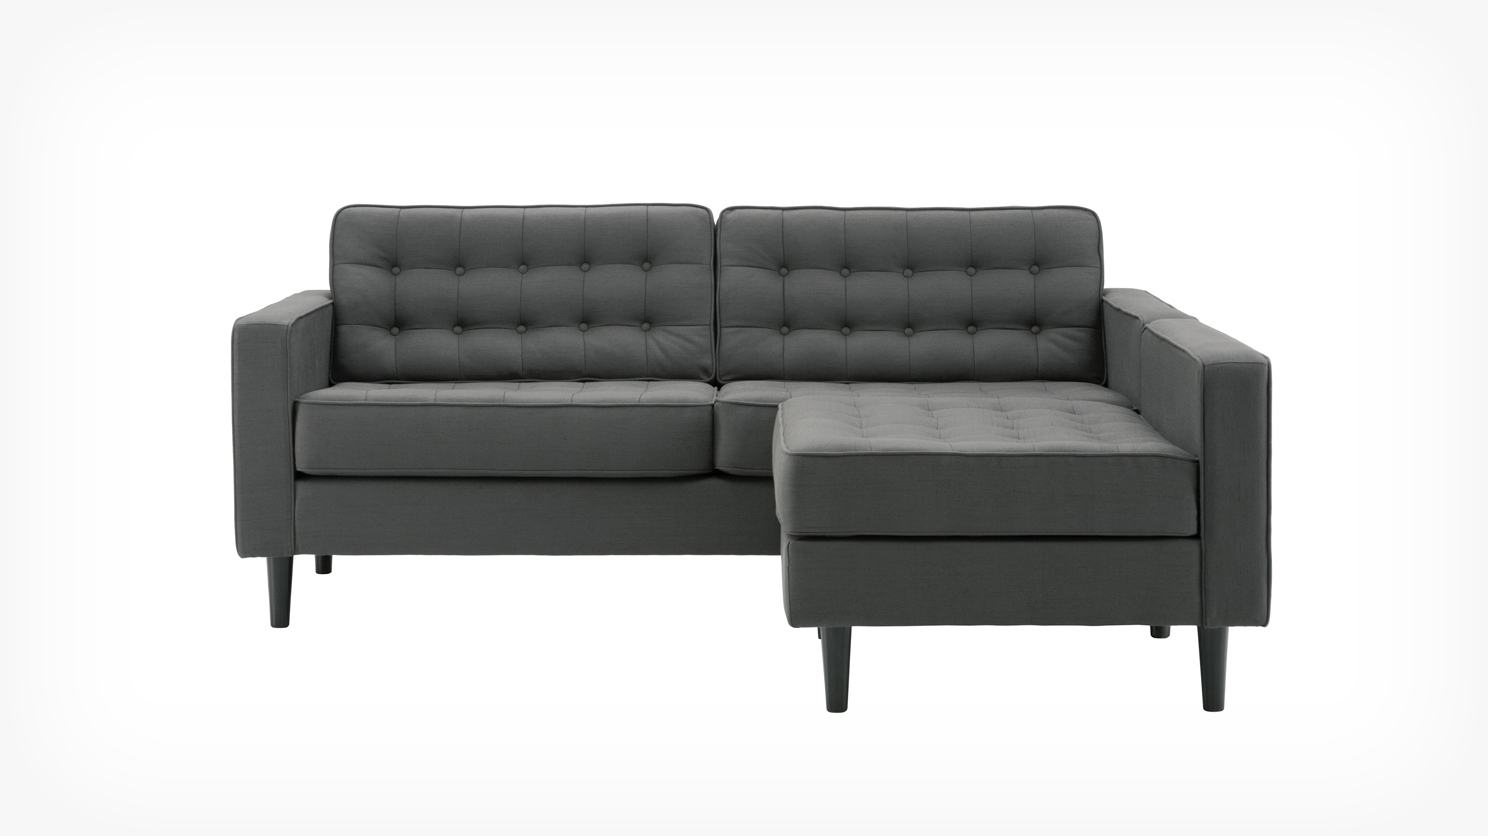 Eq3 | Reverie Apartment 2-Piece Sectional Sofa With Chaise - Fabric within Apartment Sectional Sofas With Chaise (Image 6 of 10)